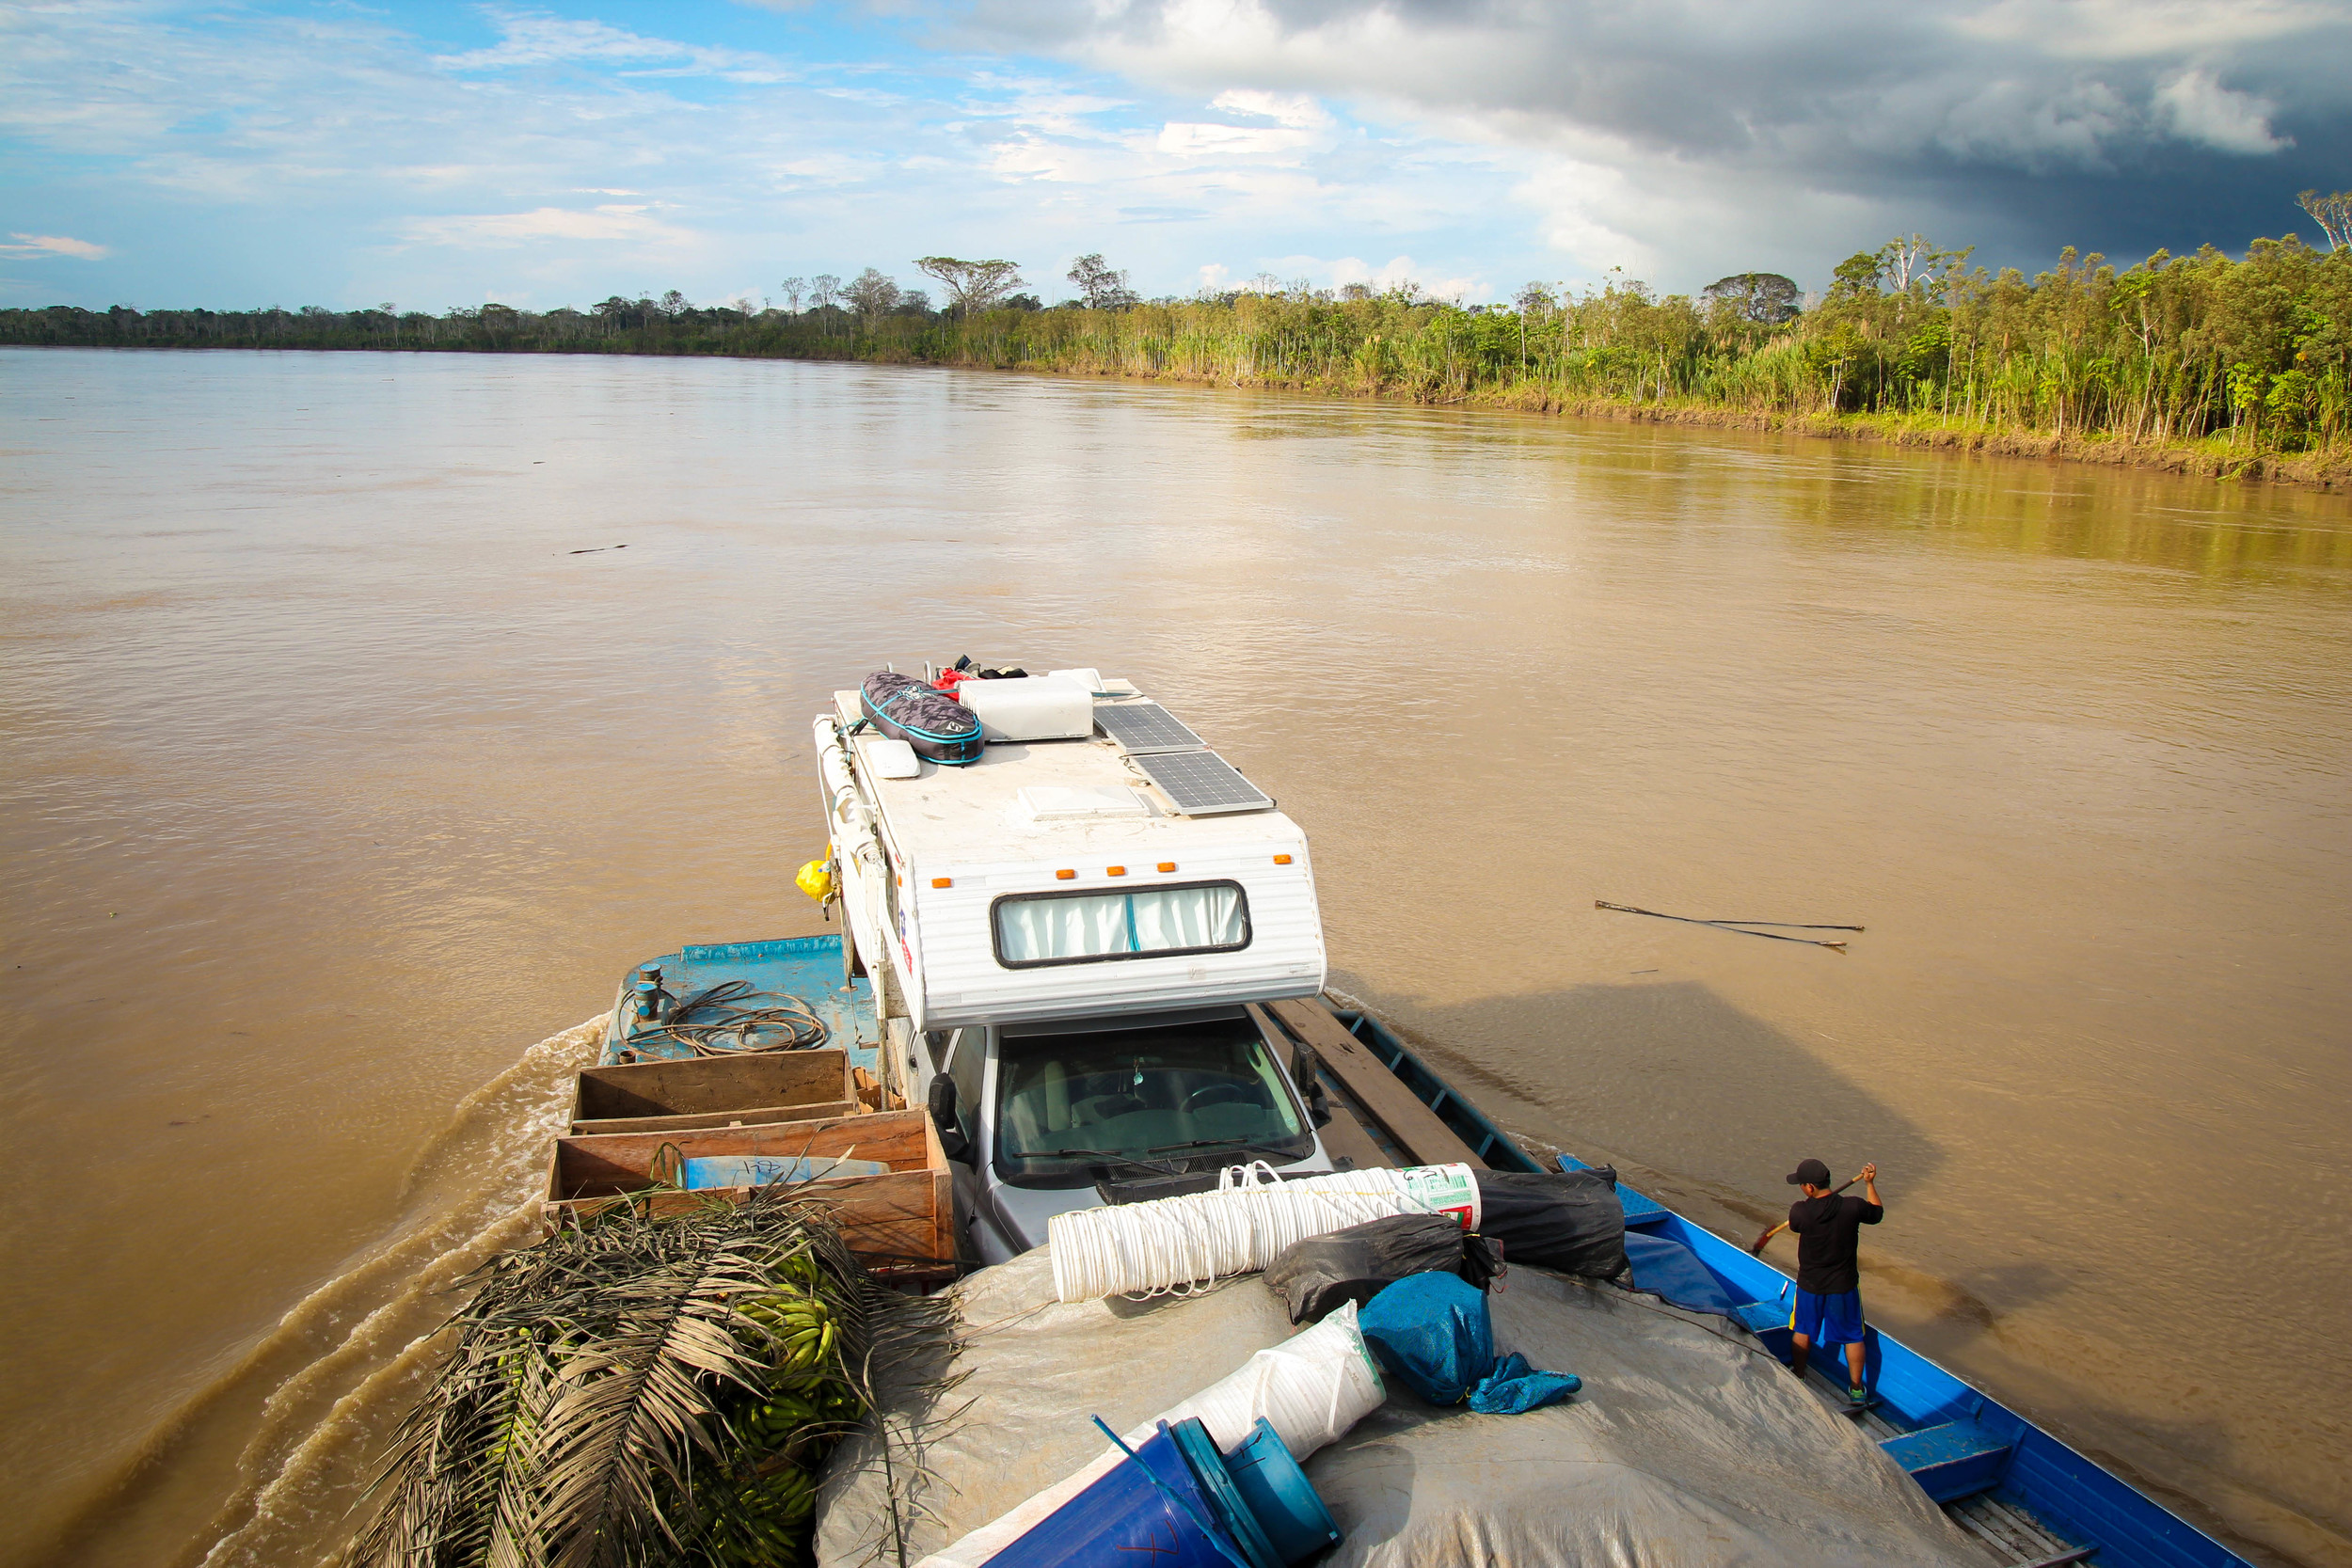 The Amazon River is massive, curvy, and murky.